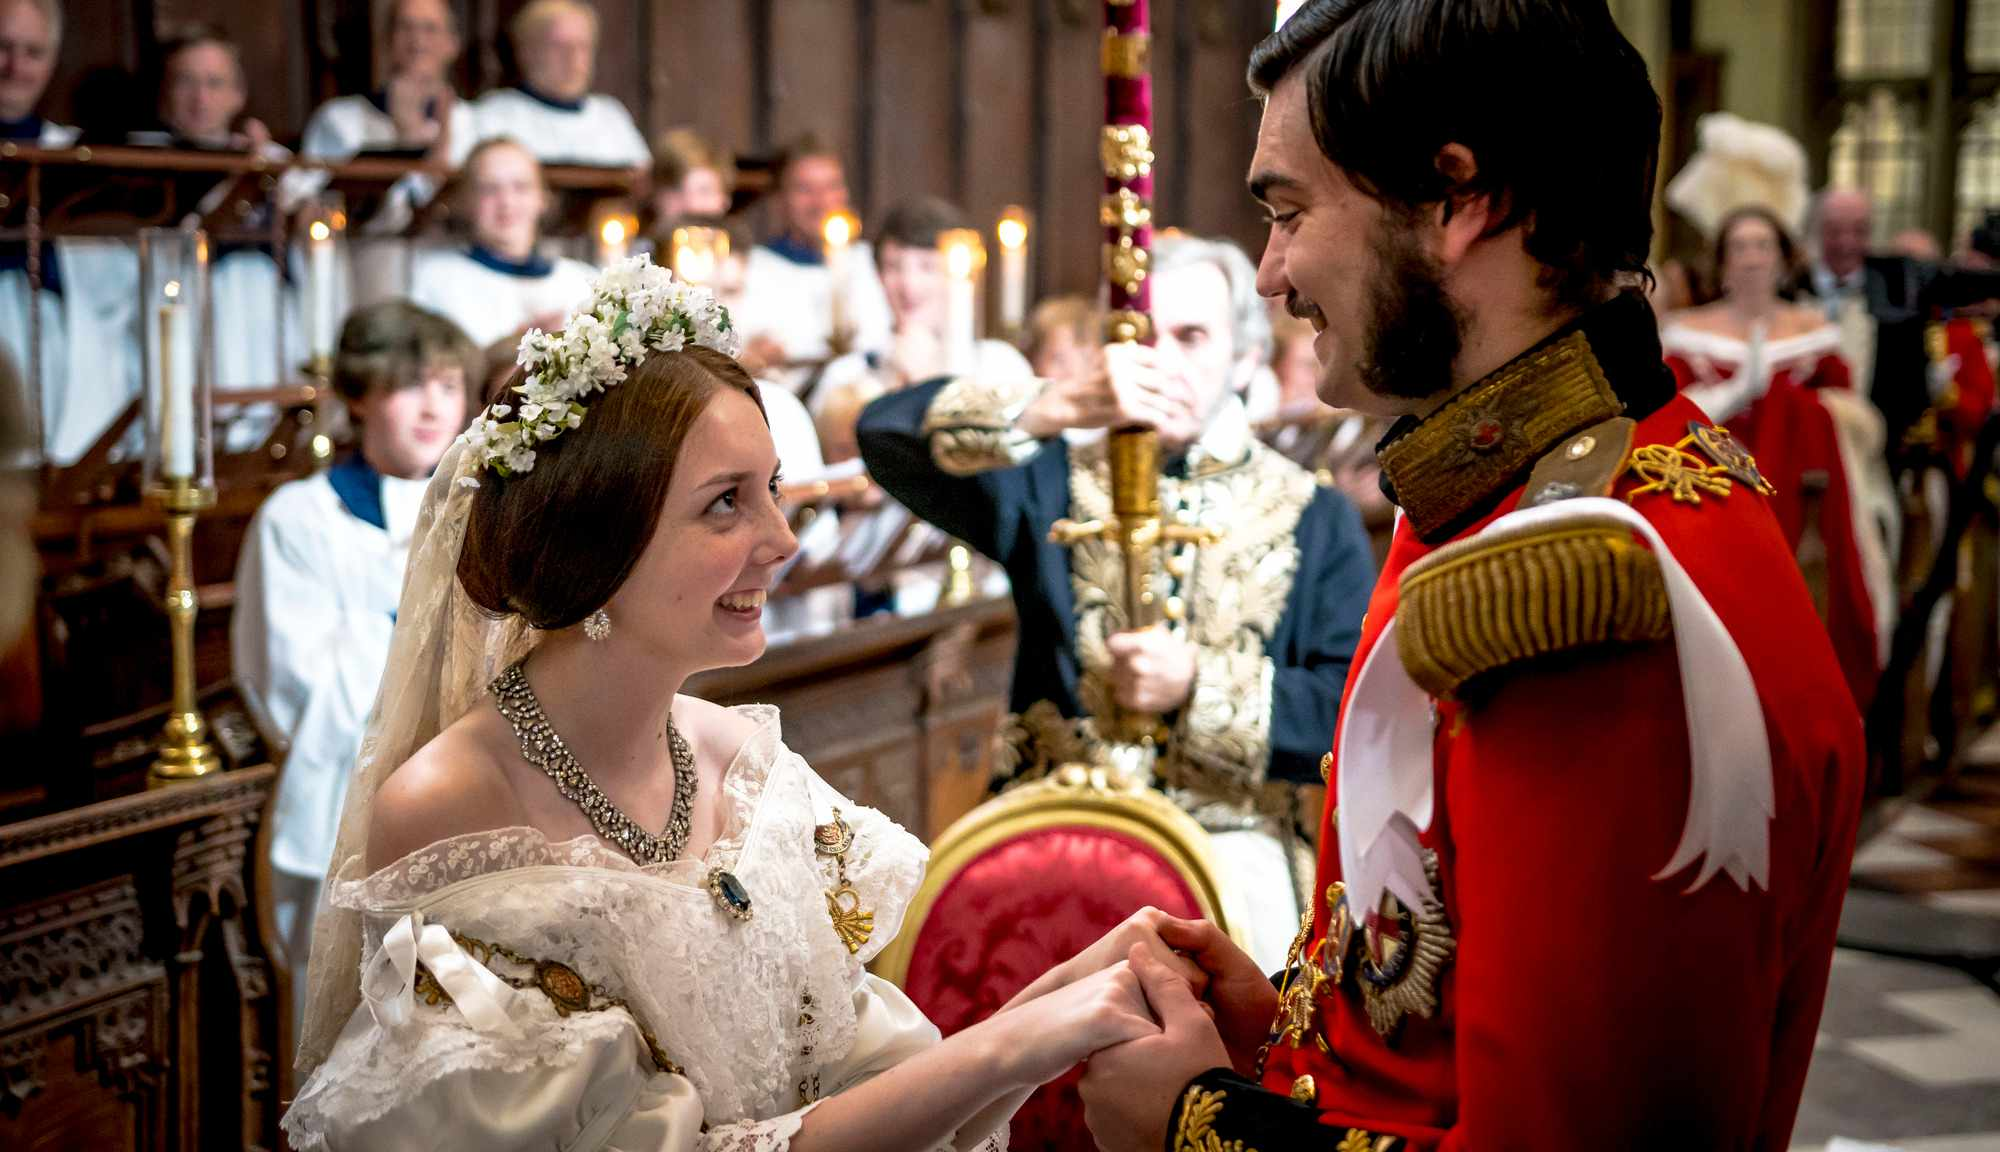 Victoria & Albert: The Royal Wedding. (Photo by BBC)